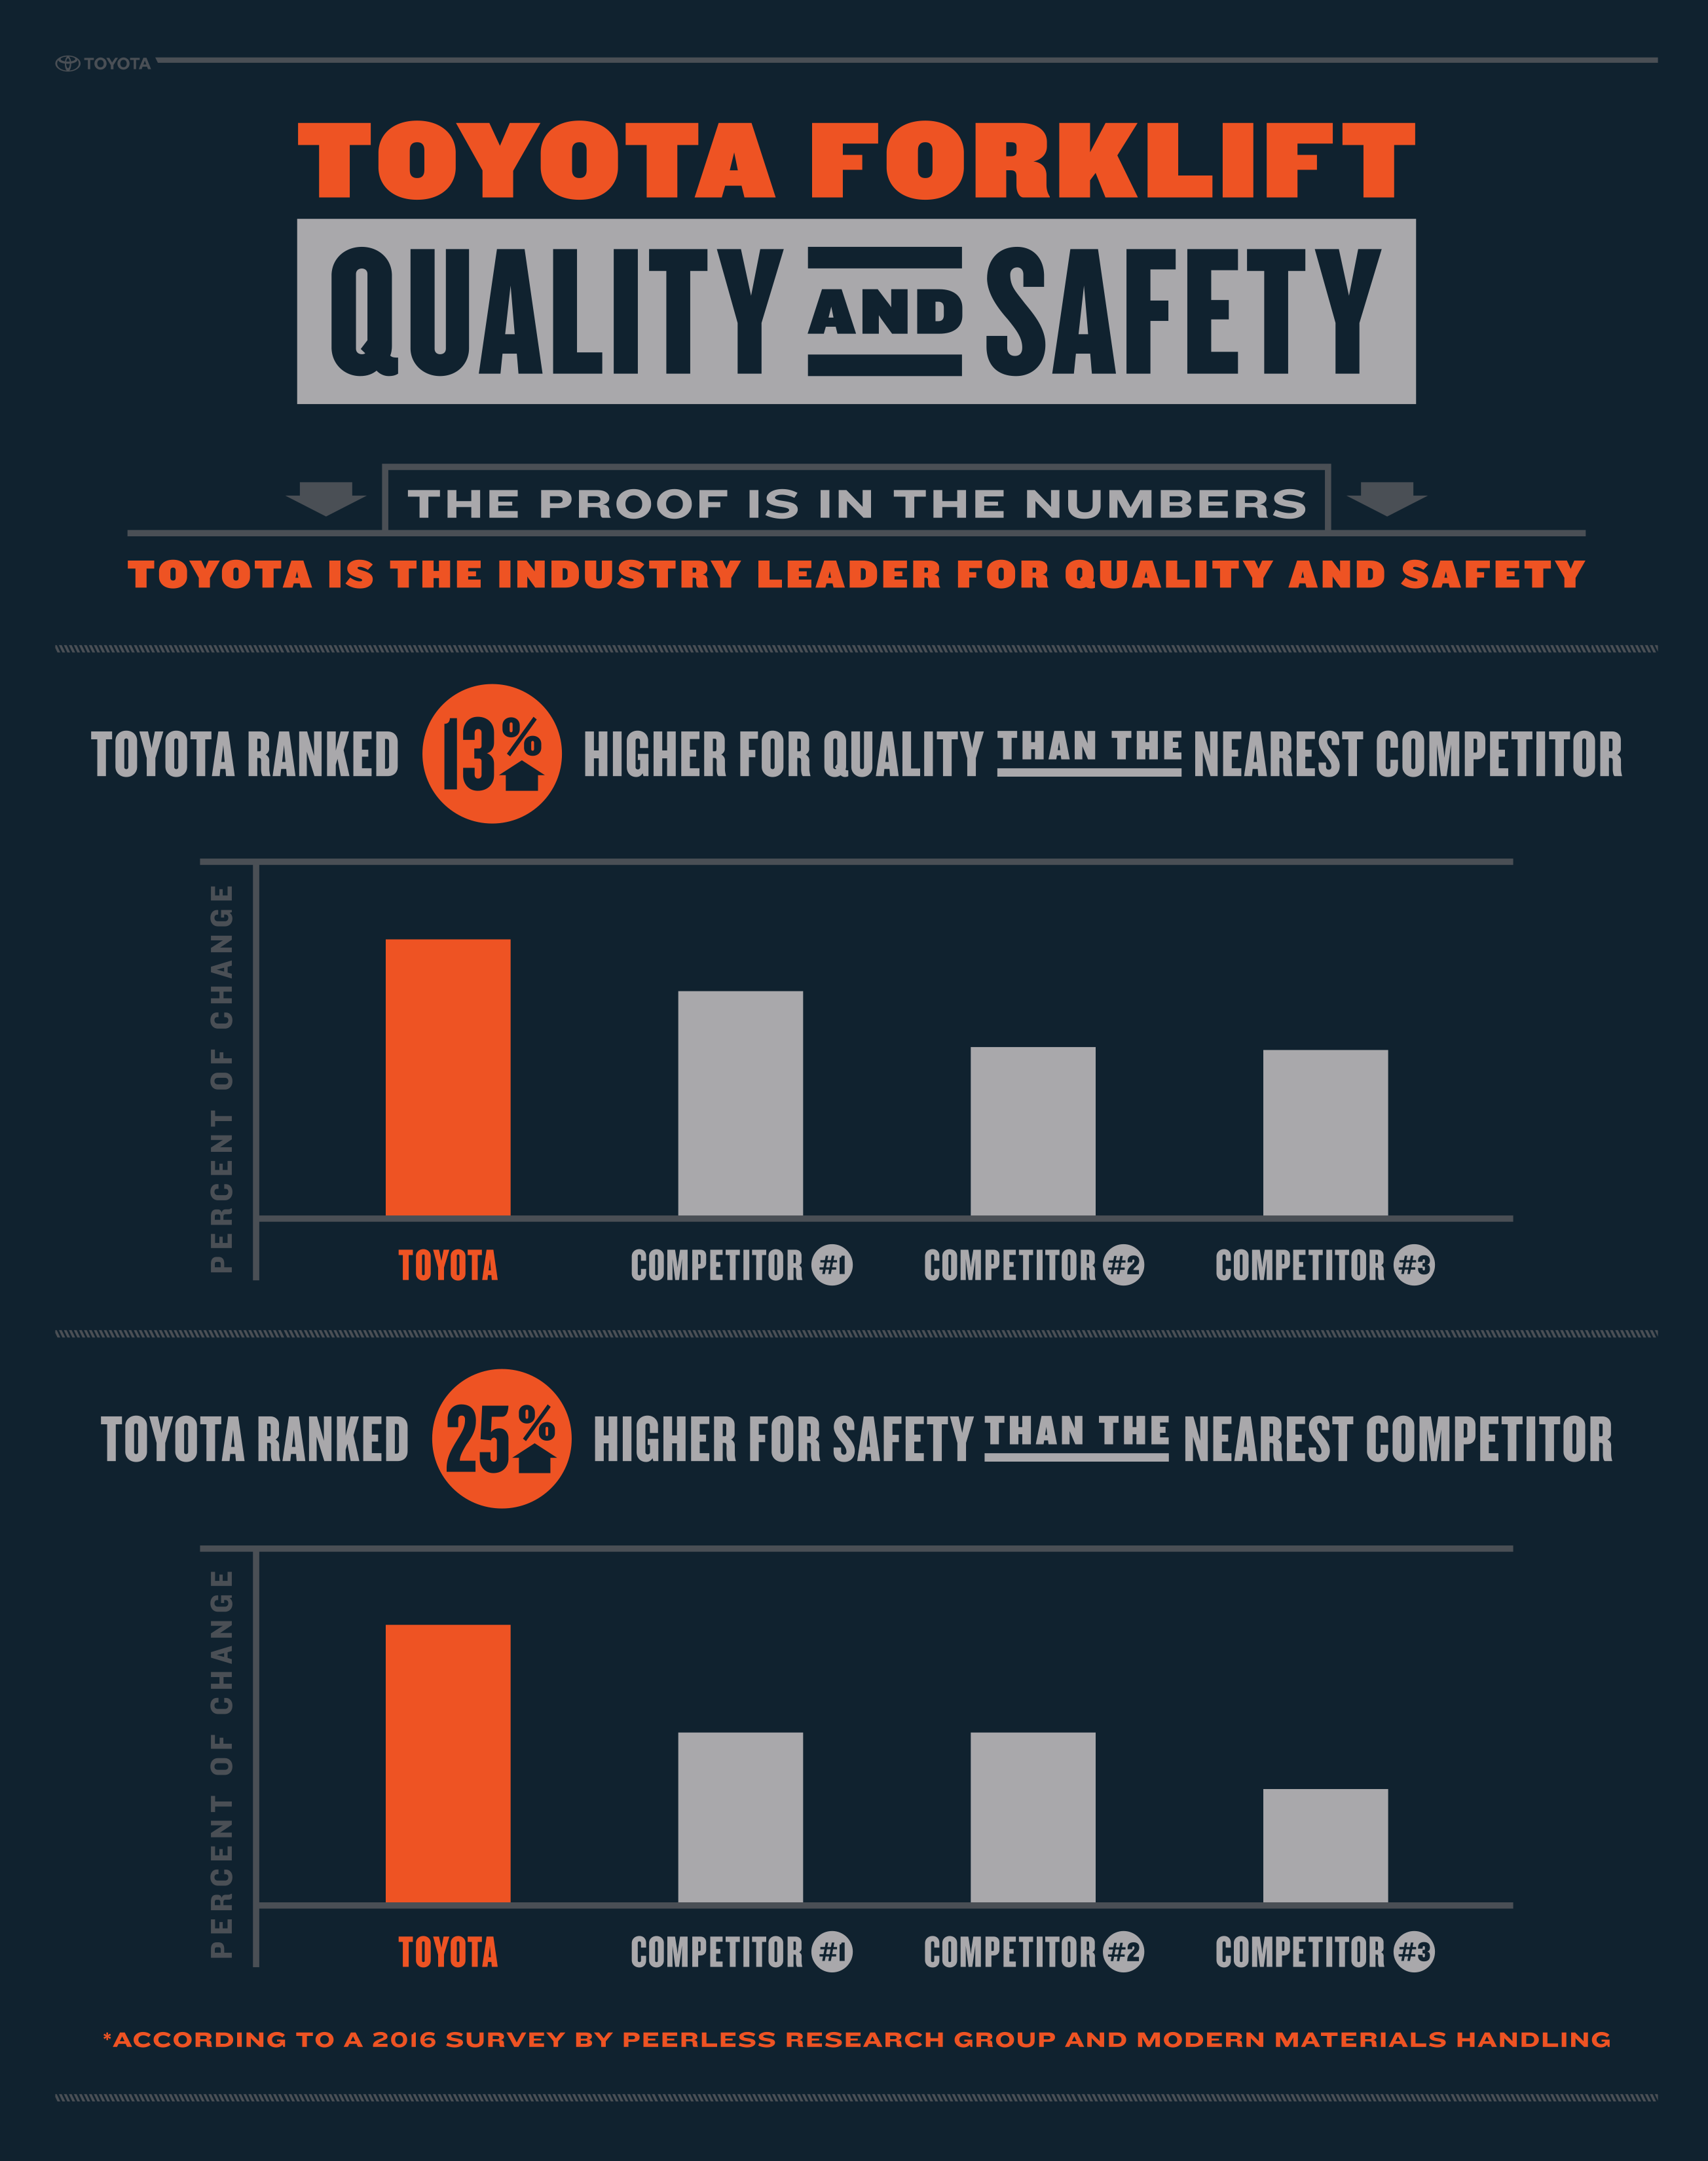 Toyotas Culture Of Safety Awareness For Forklift Equipment Toyota